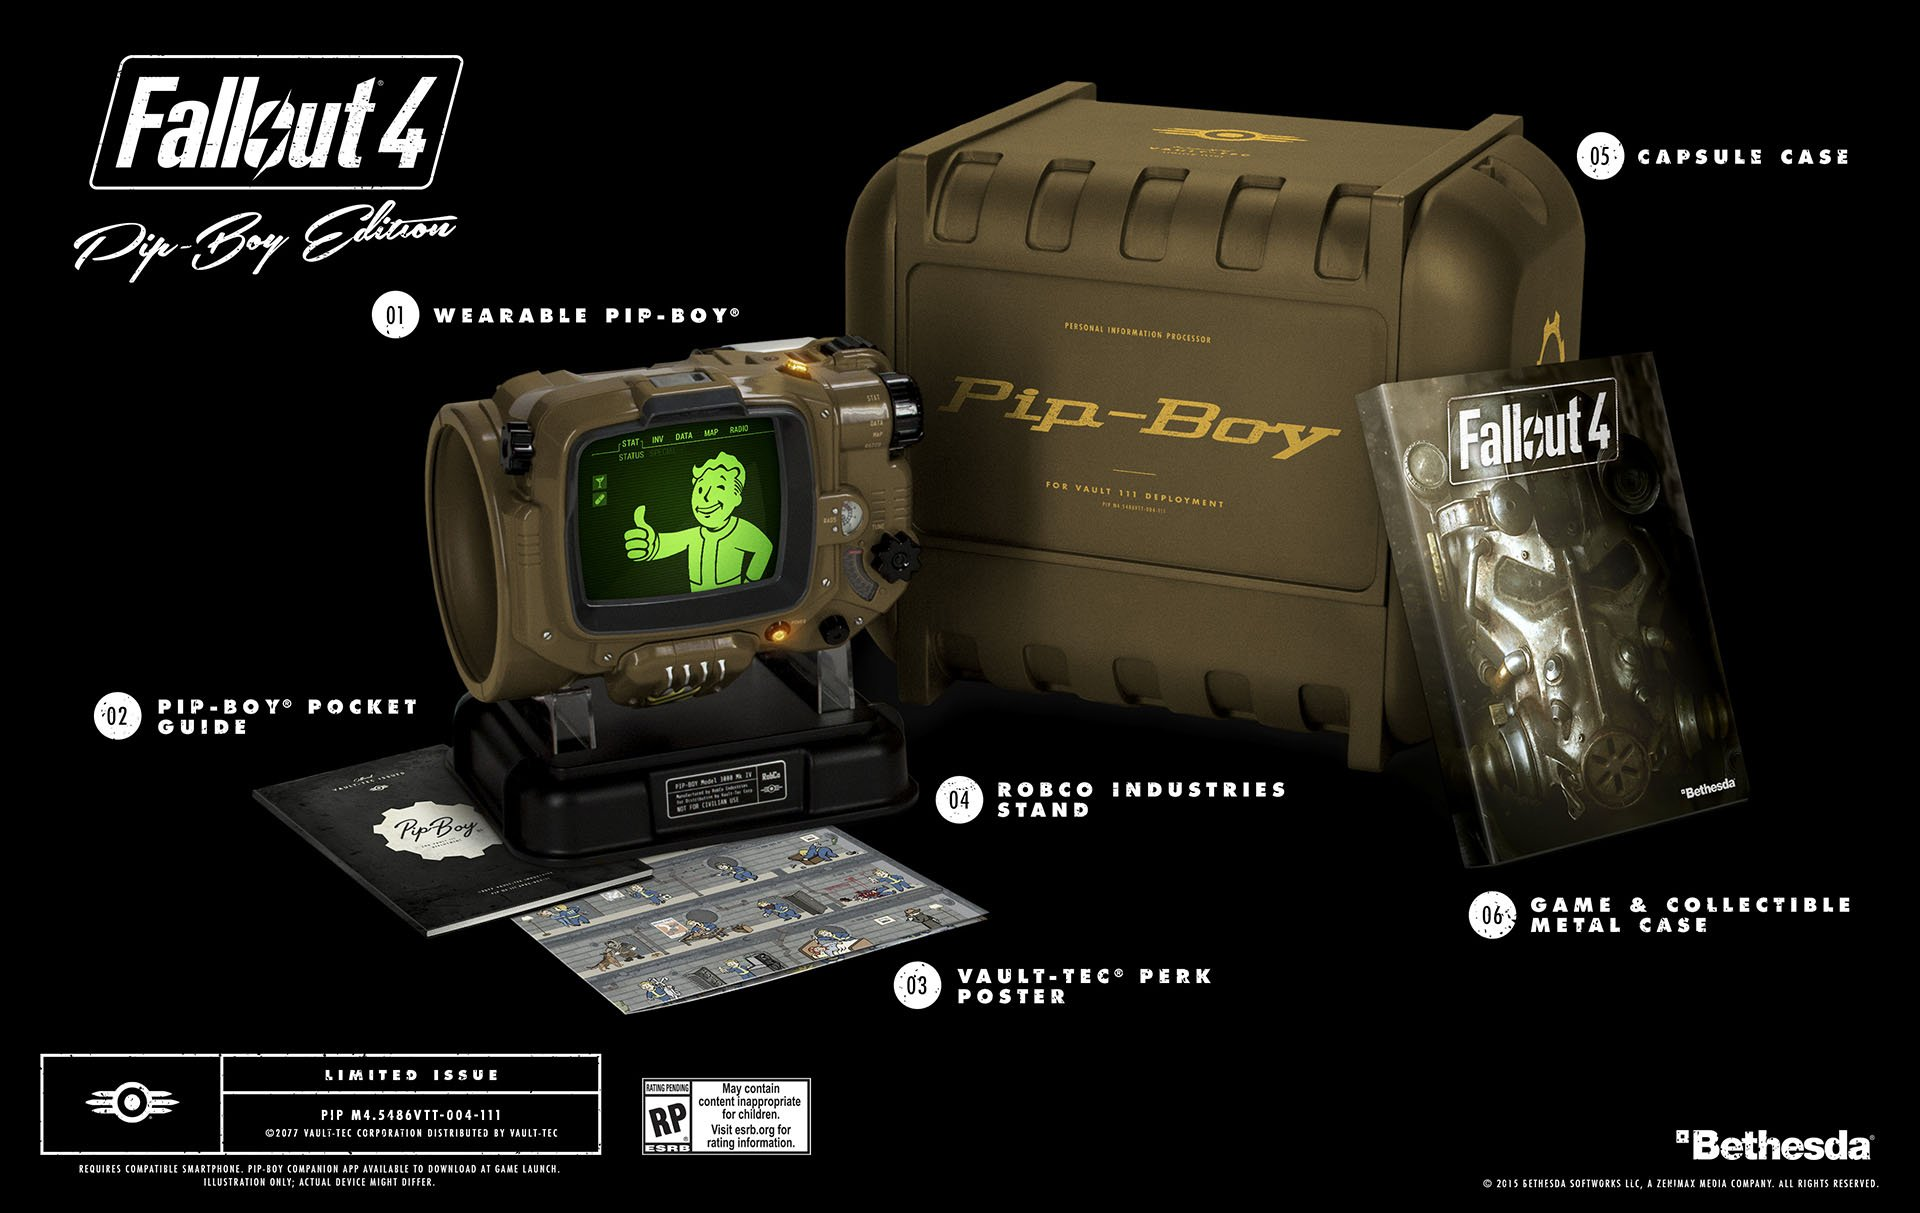 Fallout 4 Pip-Boy RED MENACE EGLA